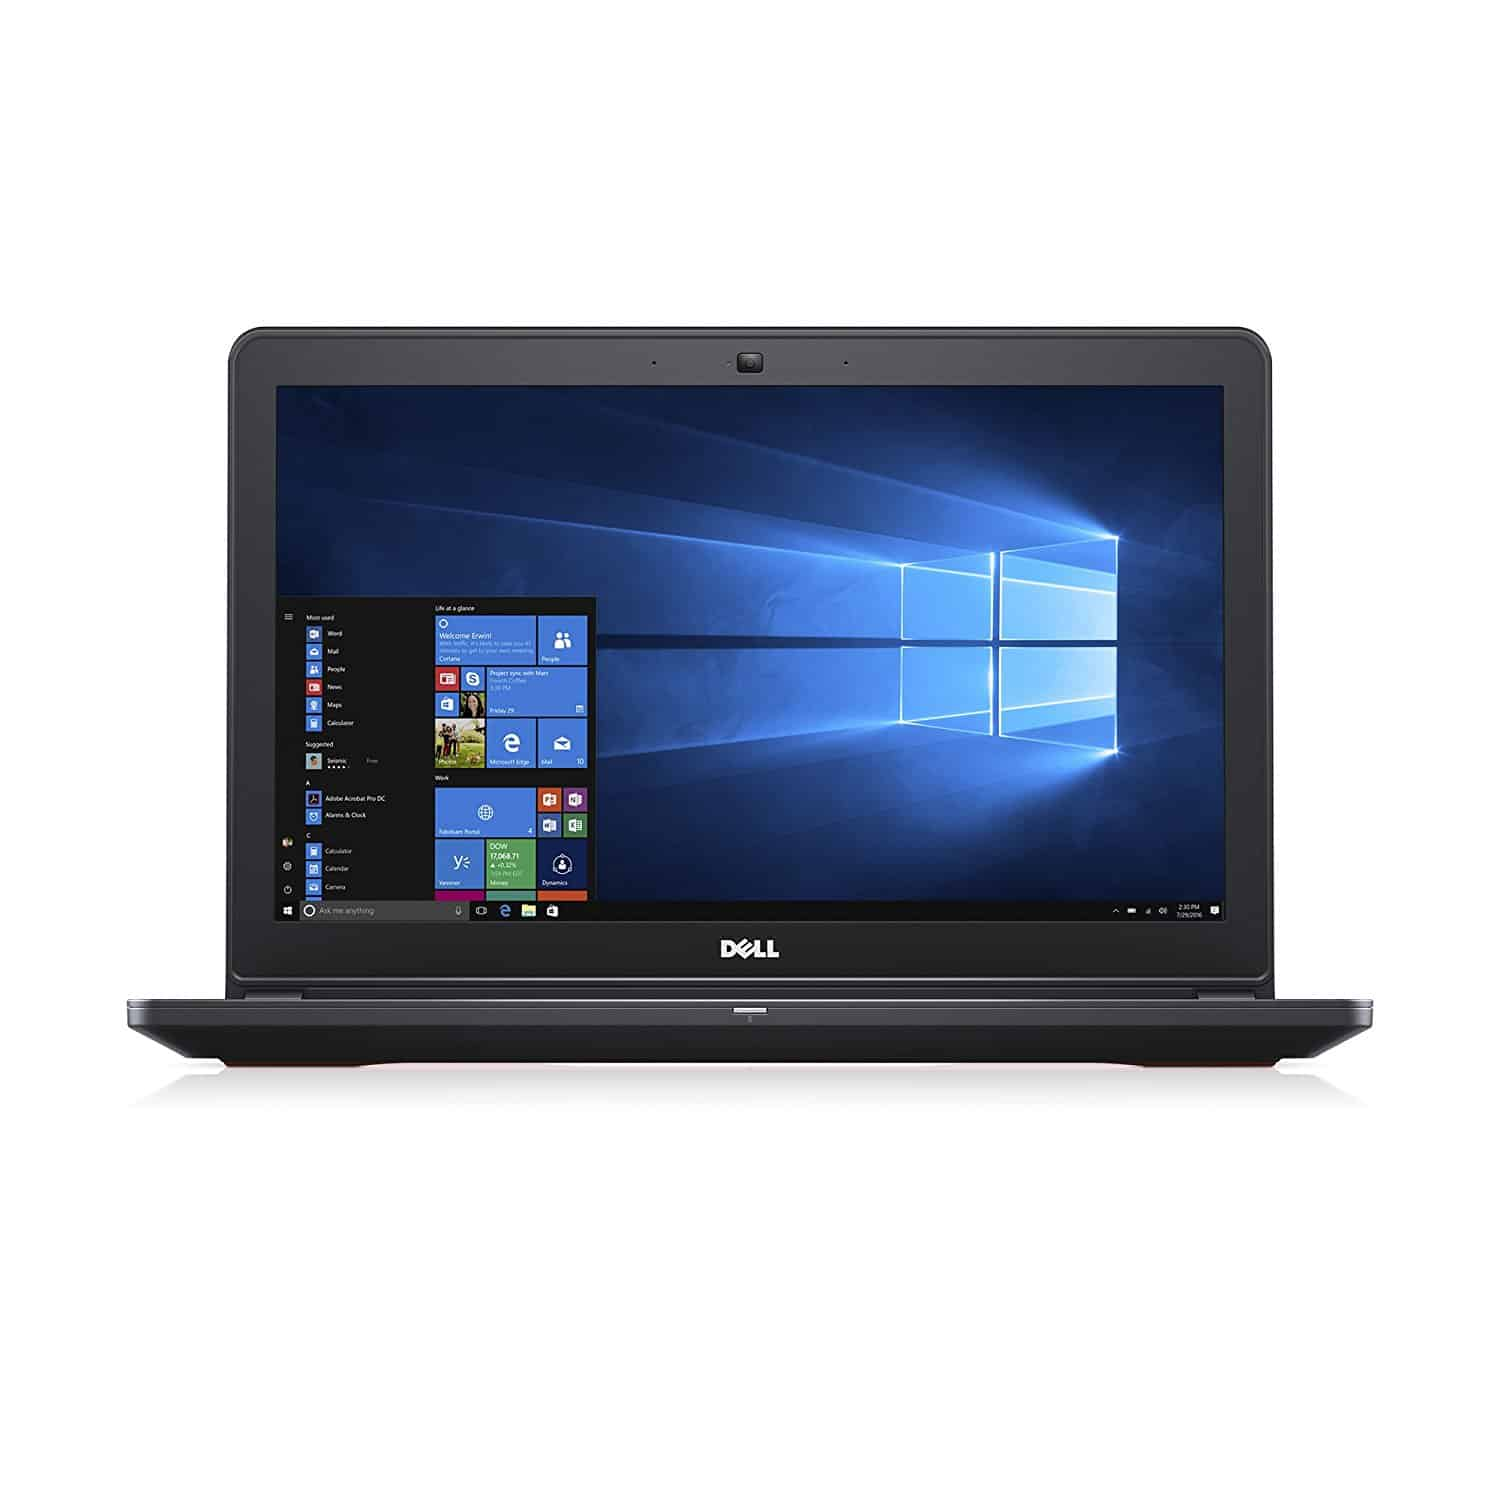 Dell Inspiron Photo Editing Notebook